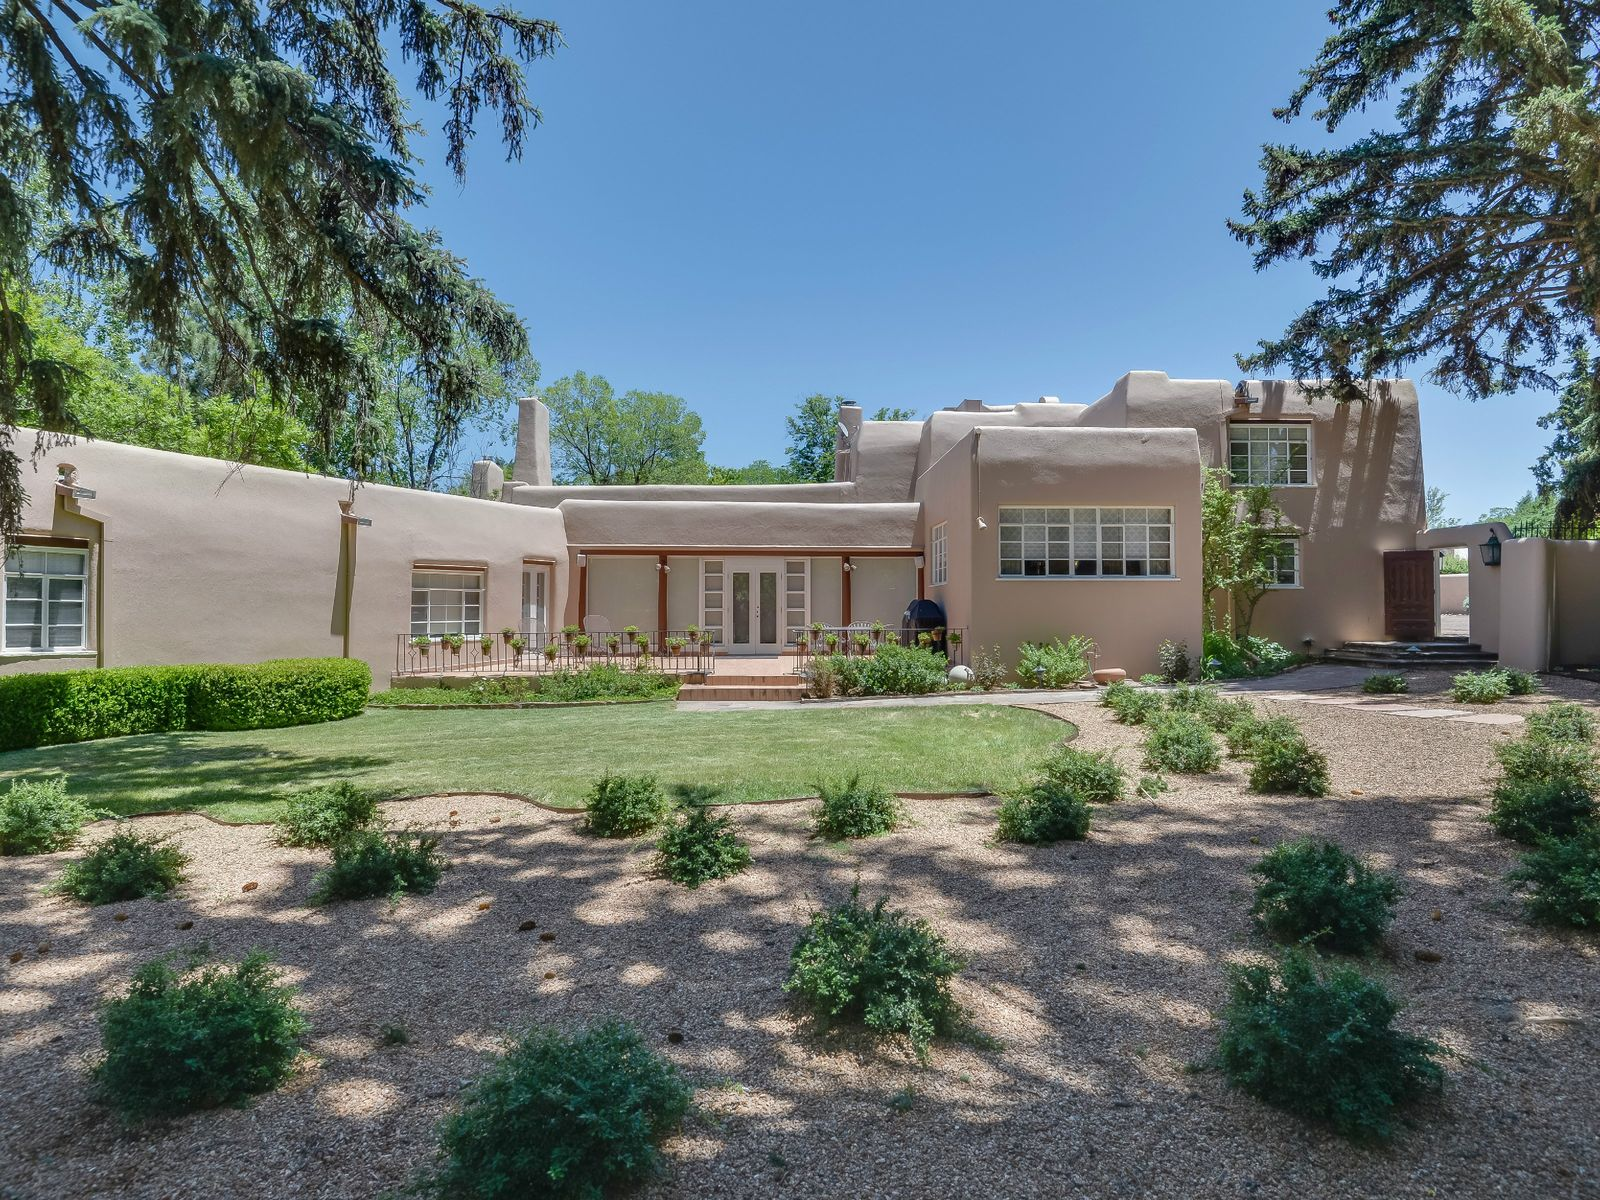 461 and 465 Camino De Las Animas, Santa Fe NM Single Family Home - Santa Fe Real Estate